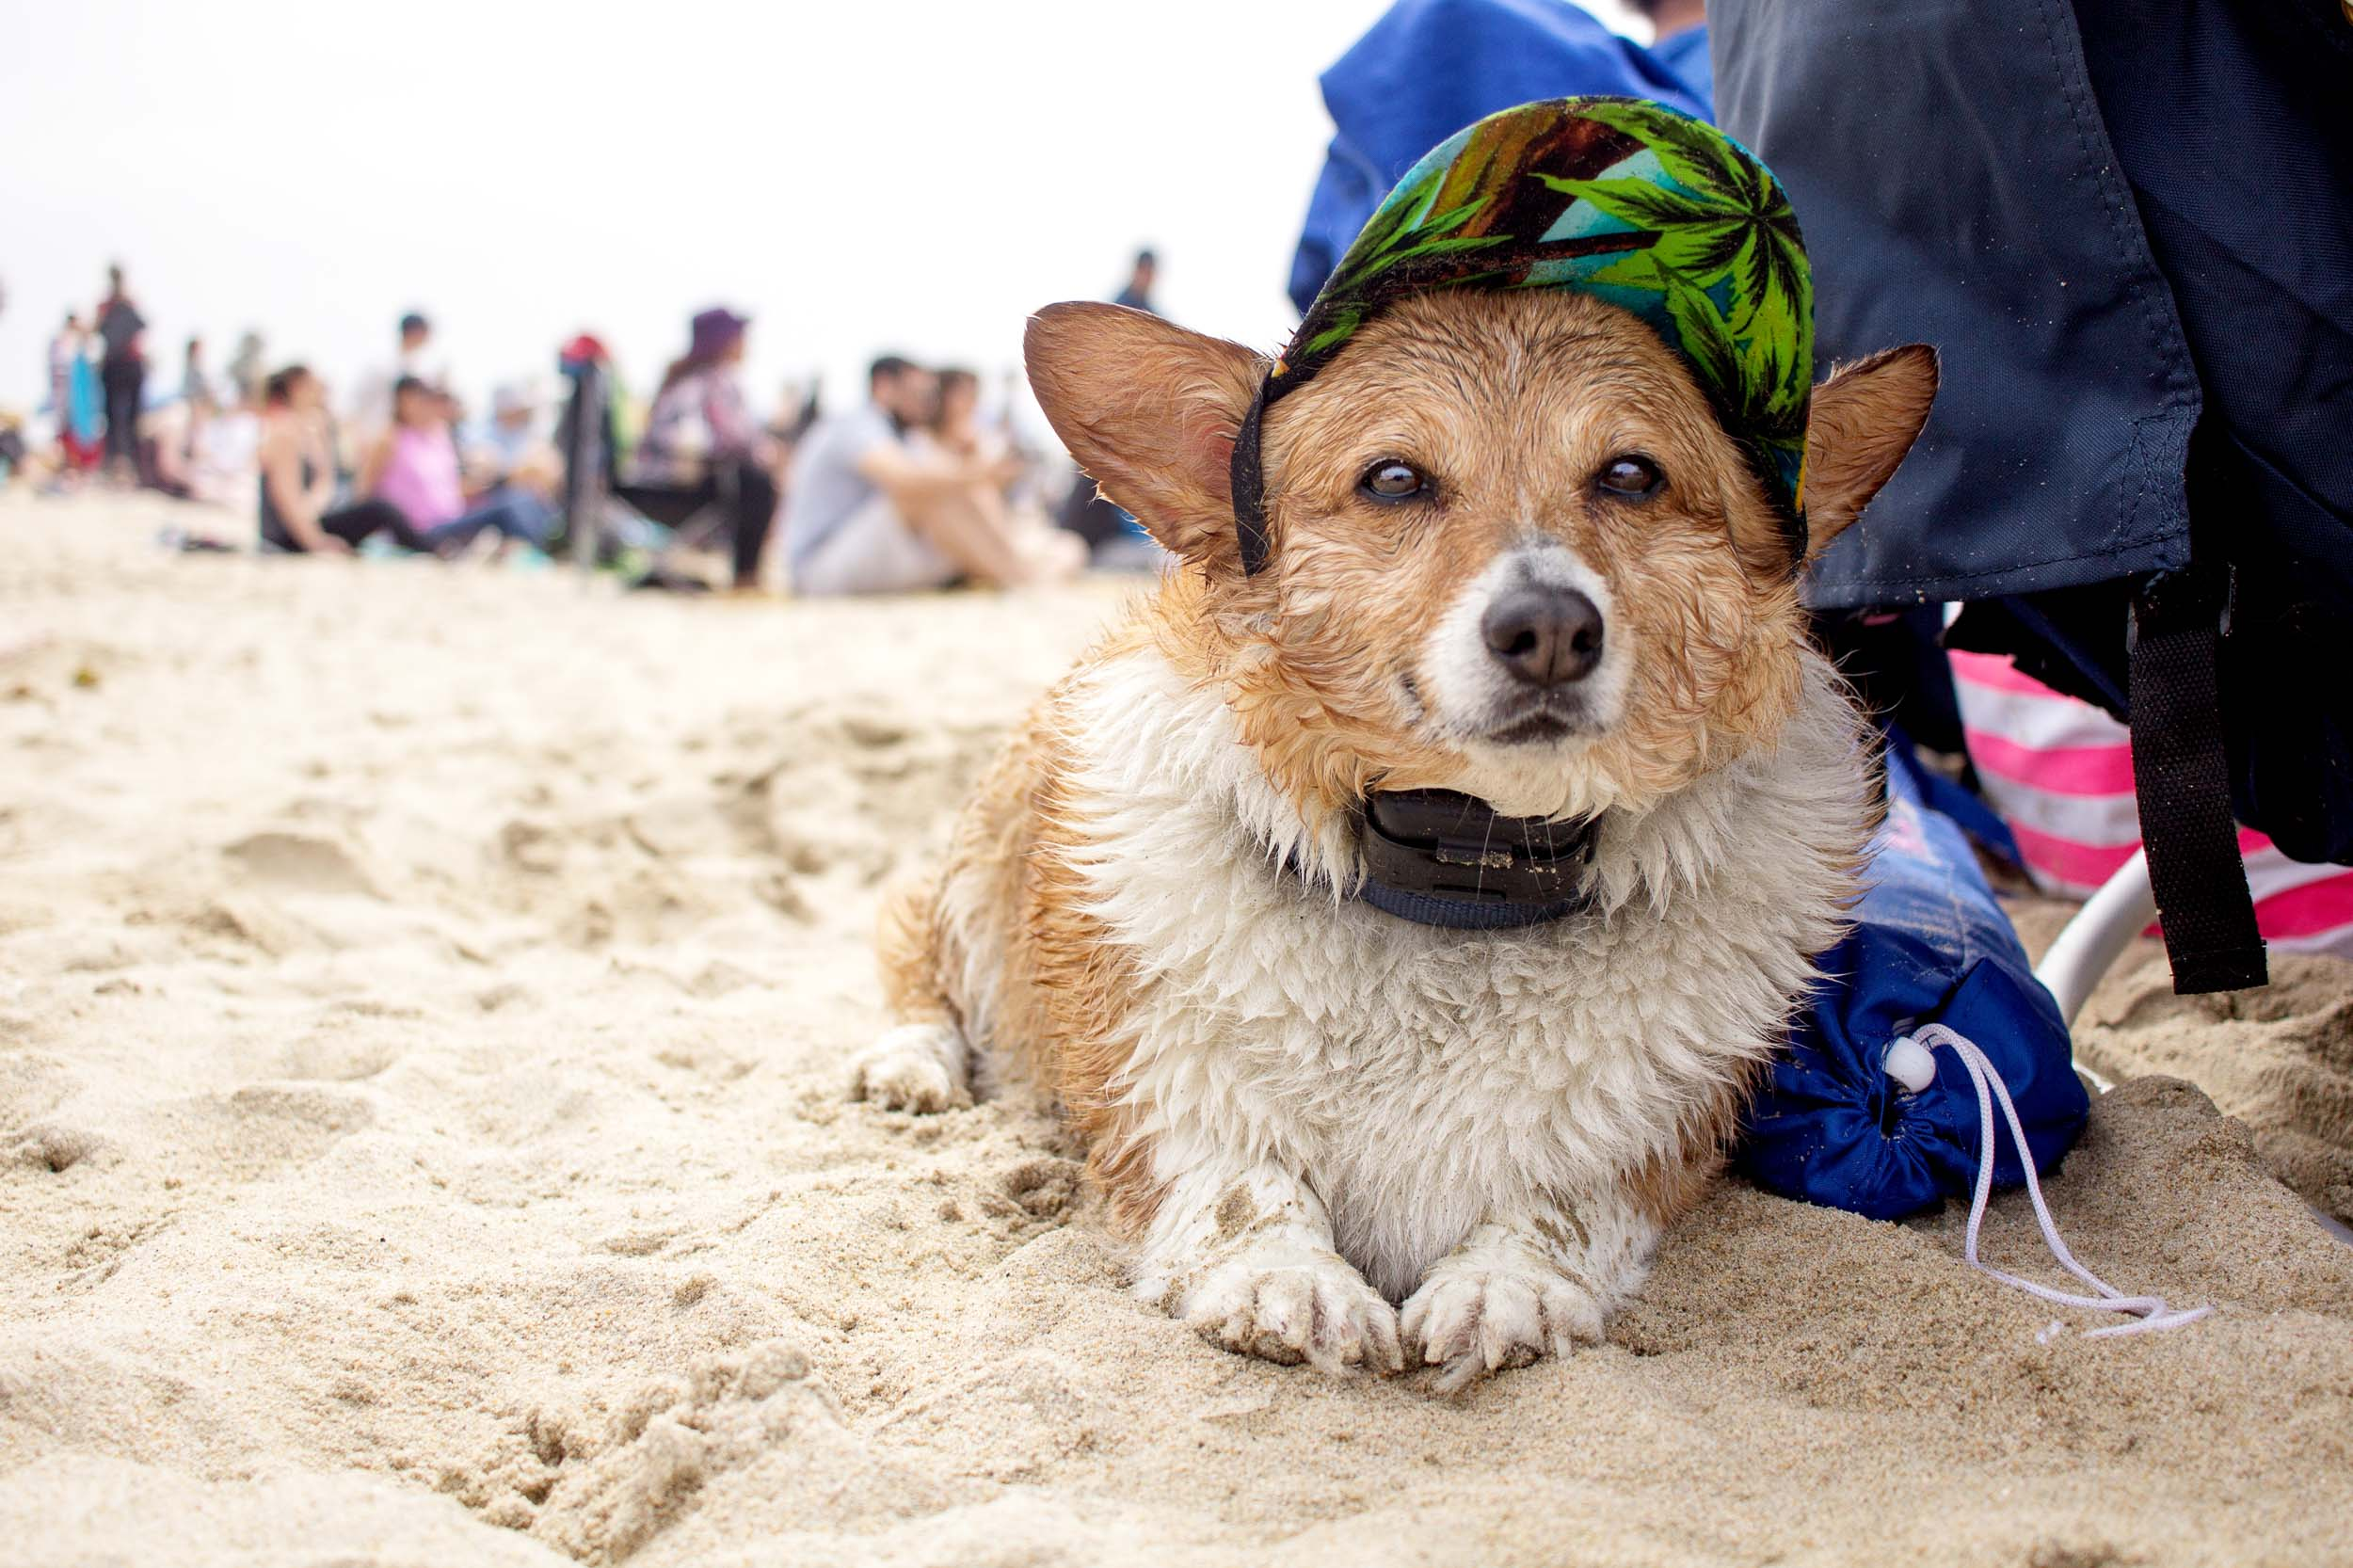 Orange-County-Dog-Photography-Pet-Huntington-Dog-Beach-SoCal-Corgi-Beach-Day_Steamer-Lee_017.JPG